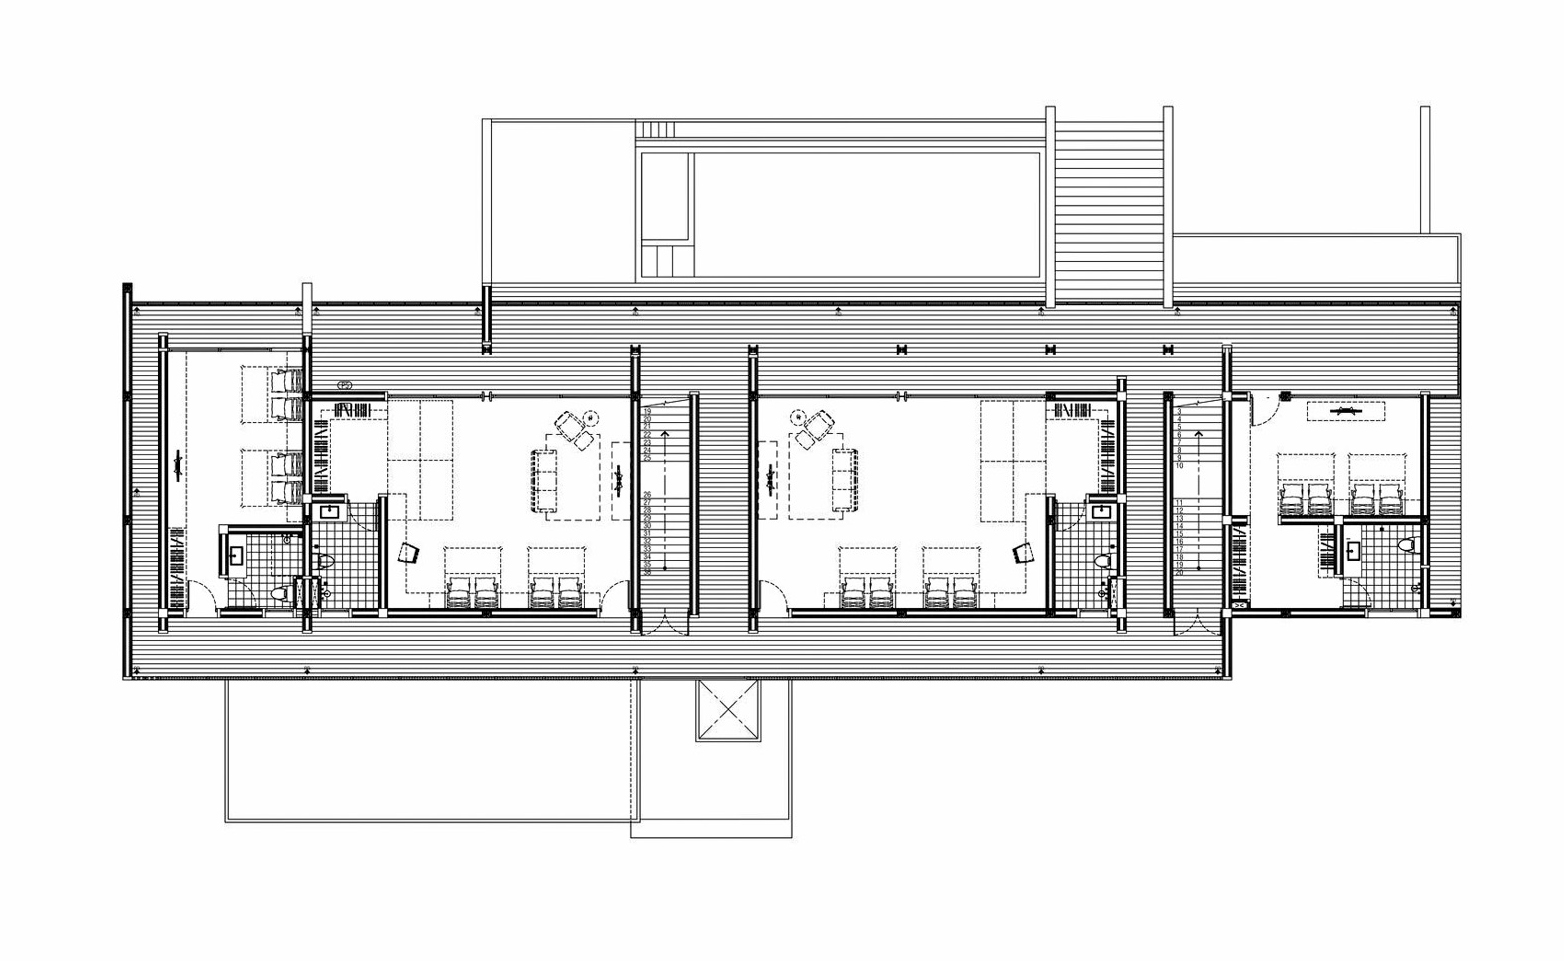 Floor Plans - Baan Bang Saray House - Sattahip District, Chon Buri, Thailand